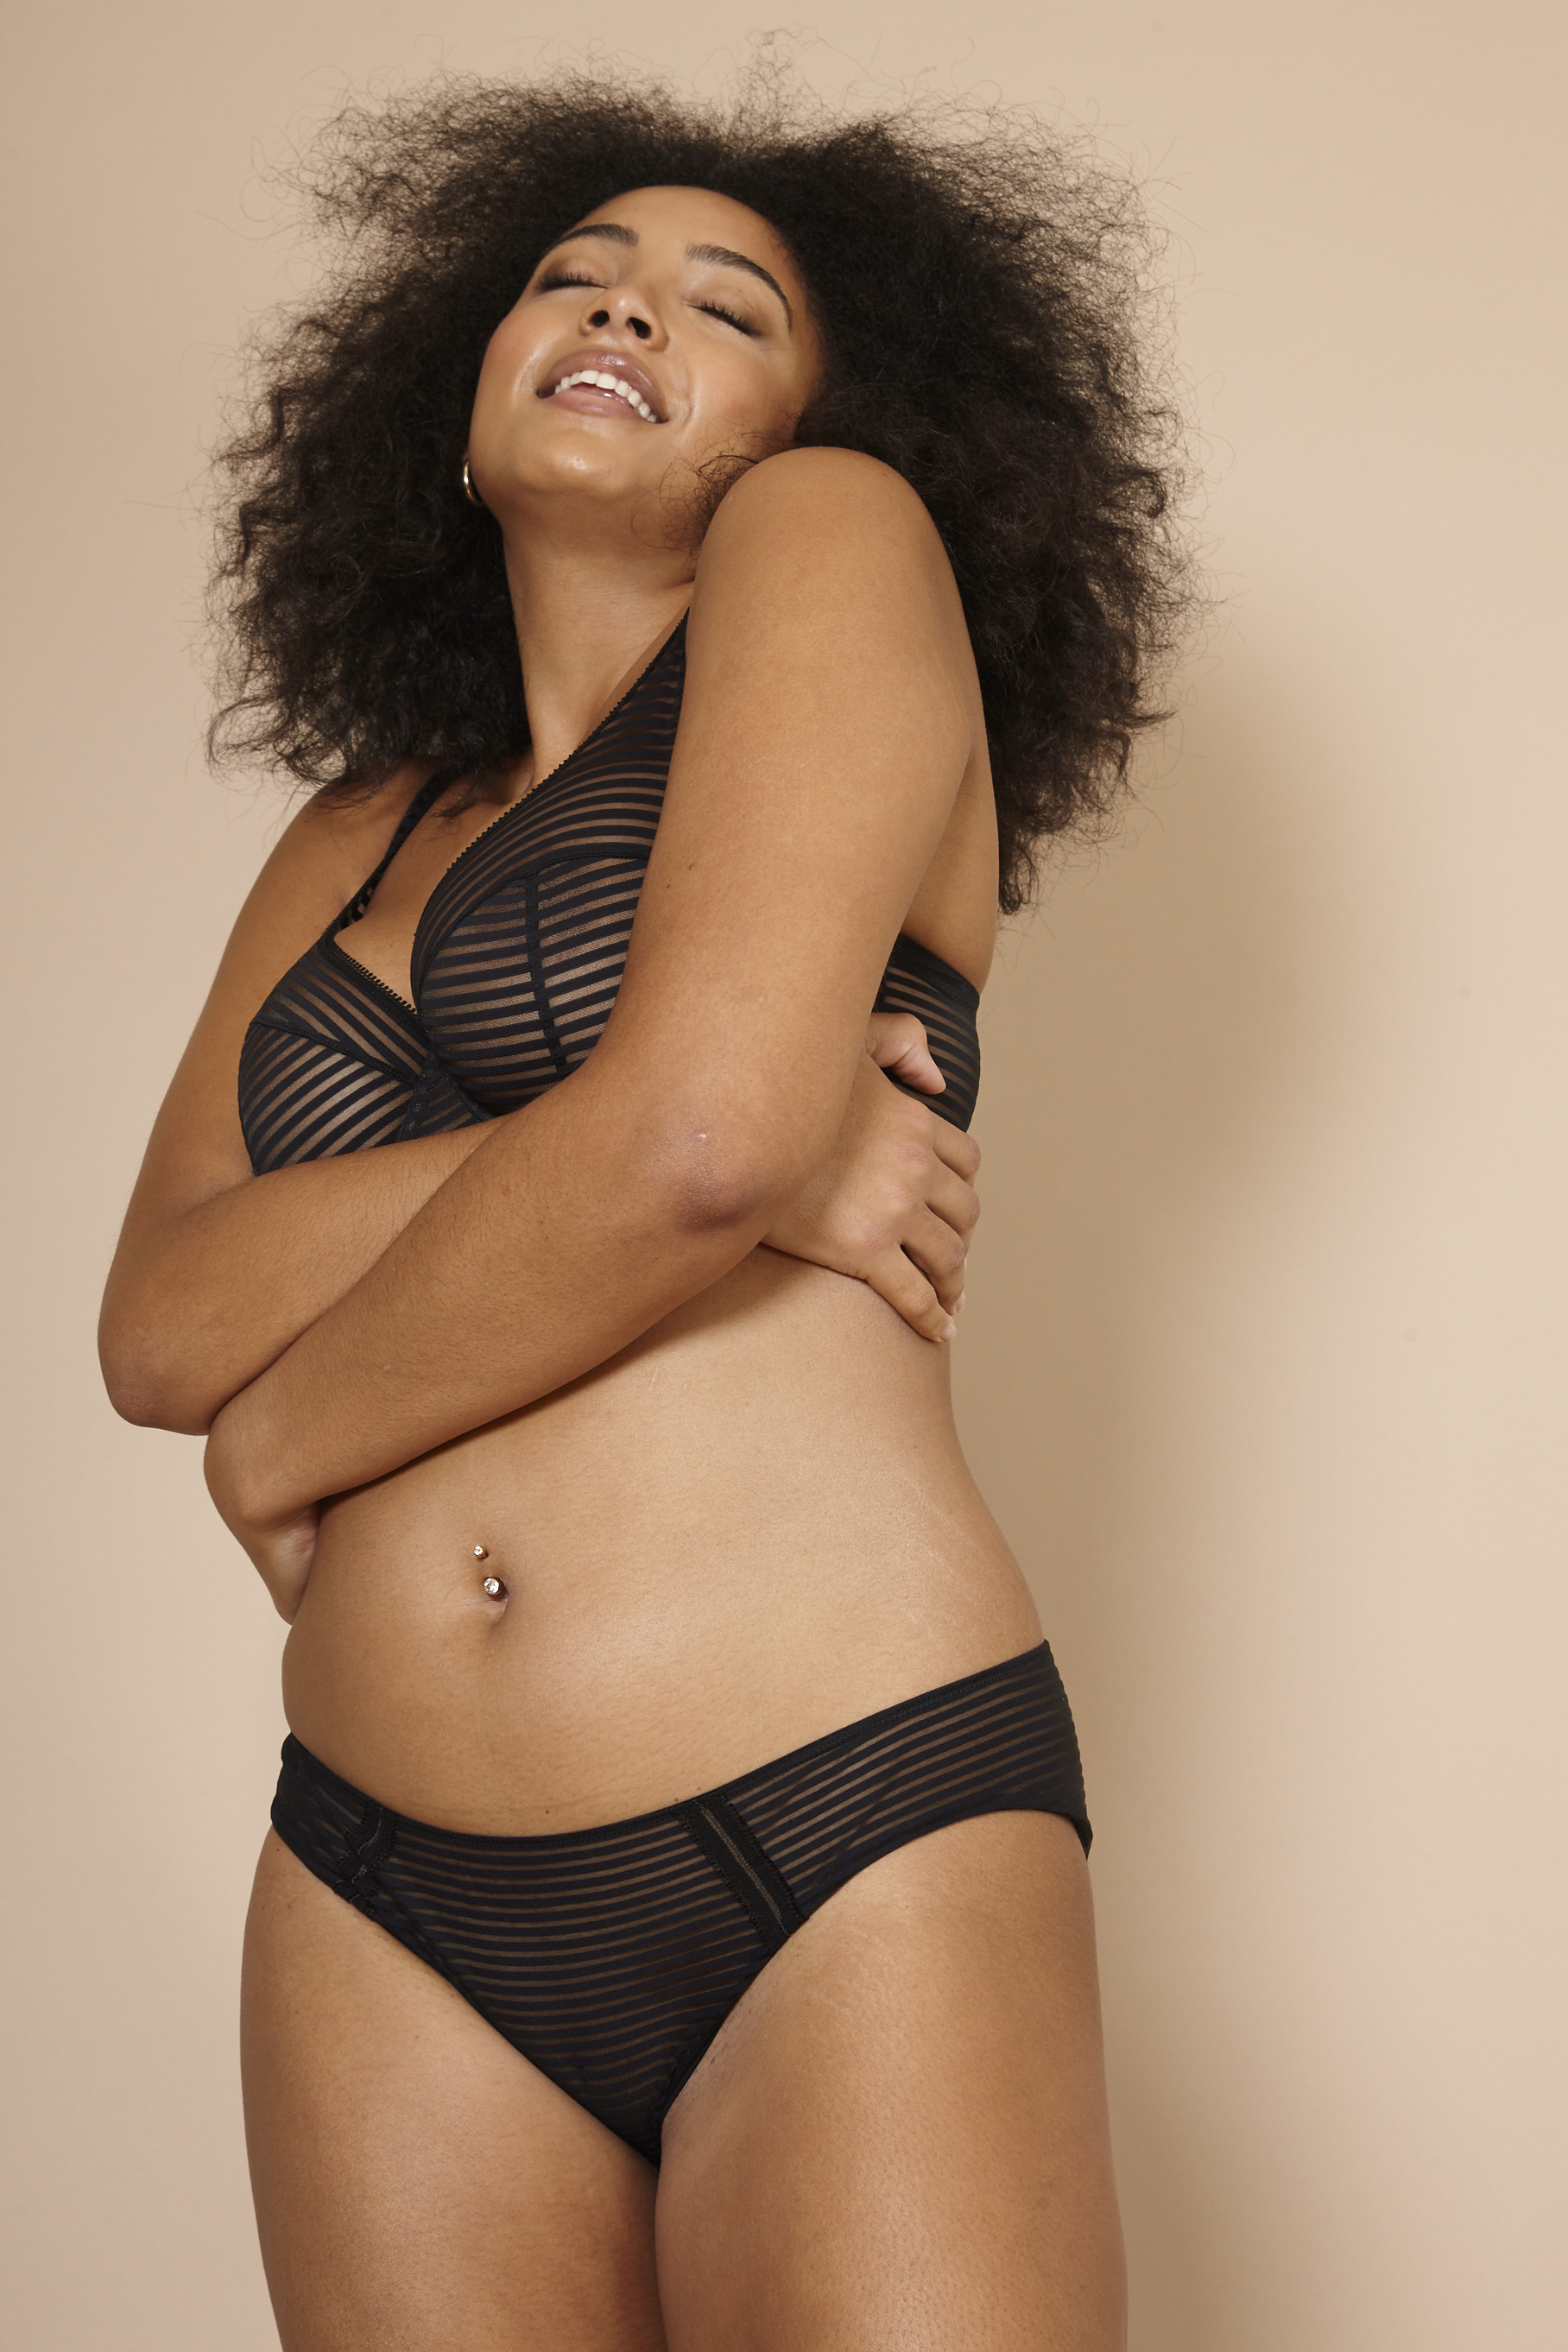 Abigail Edwards female curve models shoots with Beija London for their latest Look Book Bridge Models London